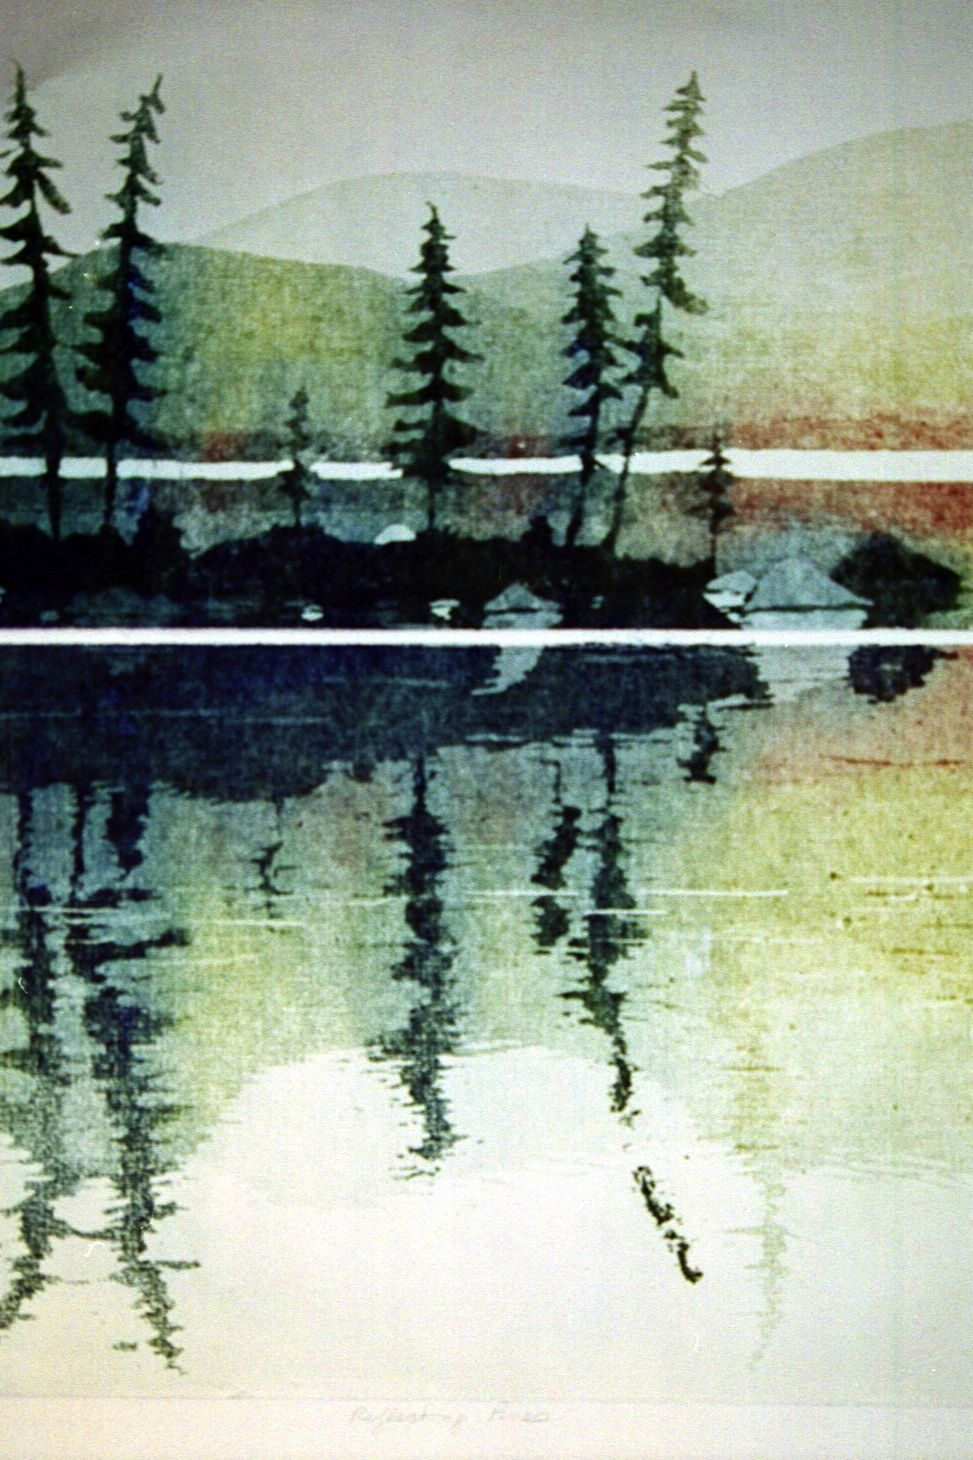 Reflecting Pines